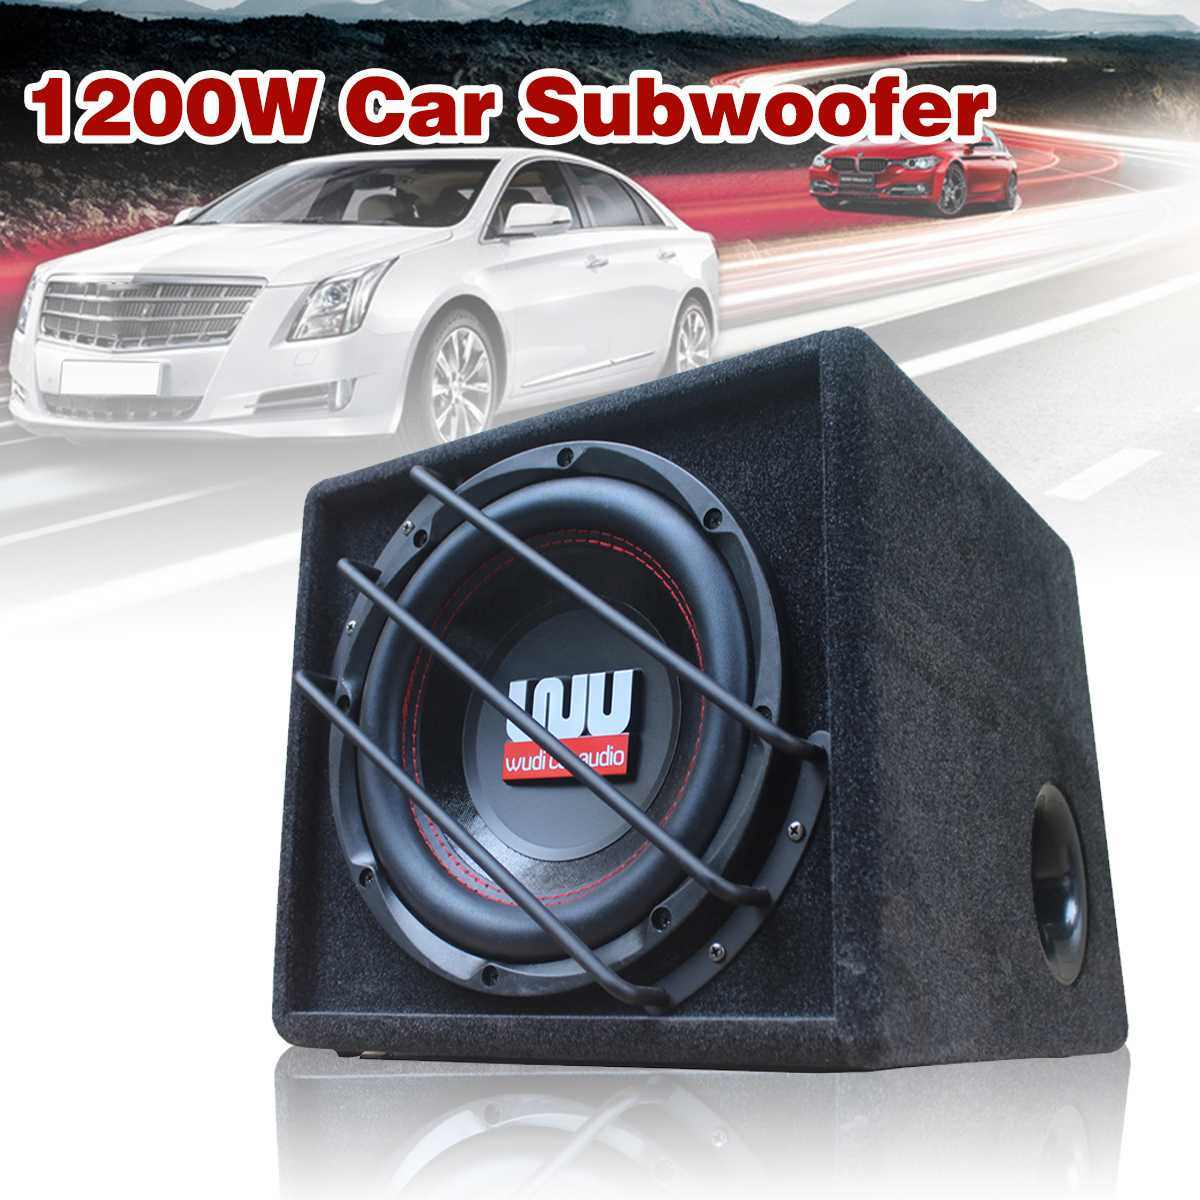 10 inch 1200w car subwoofer Strong Subwoofer Car Speaker Auto Super Bass Car Audio Speaker active Woofer Built-in Amplifer